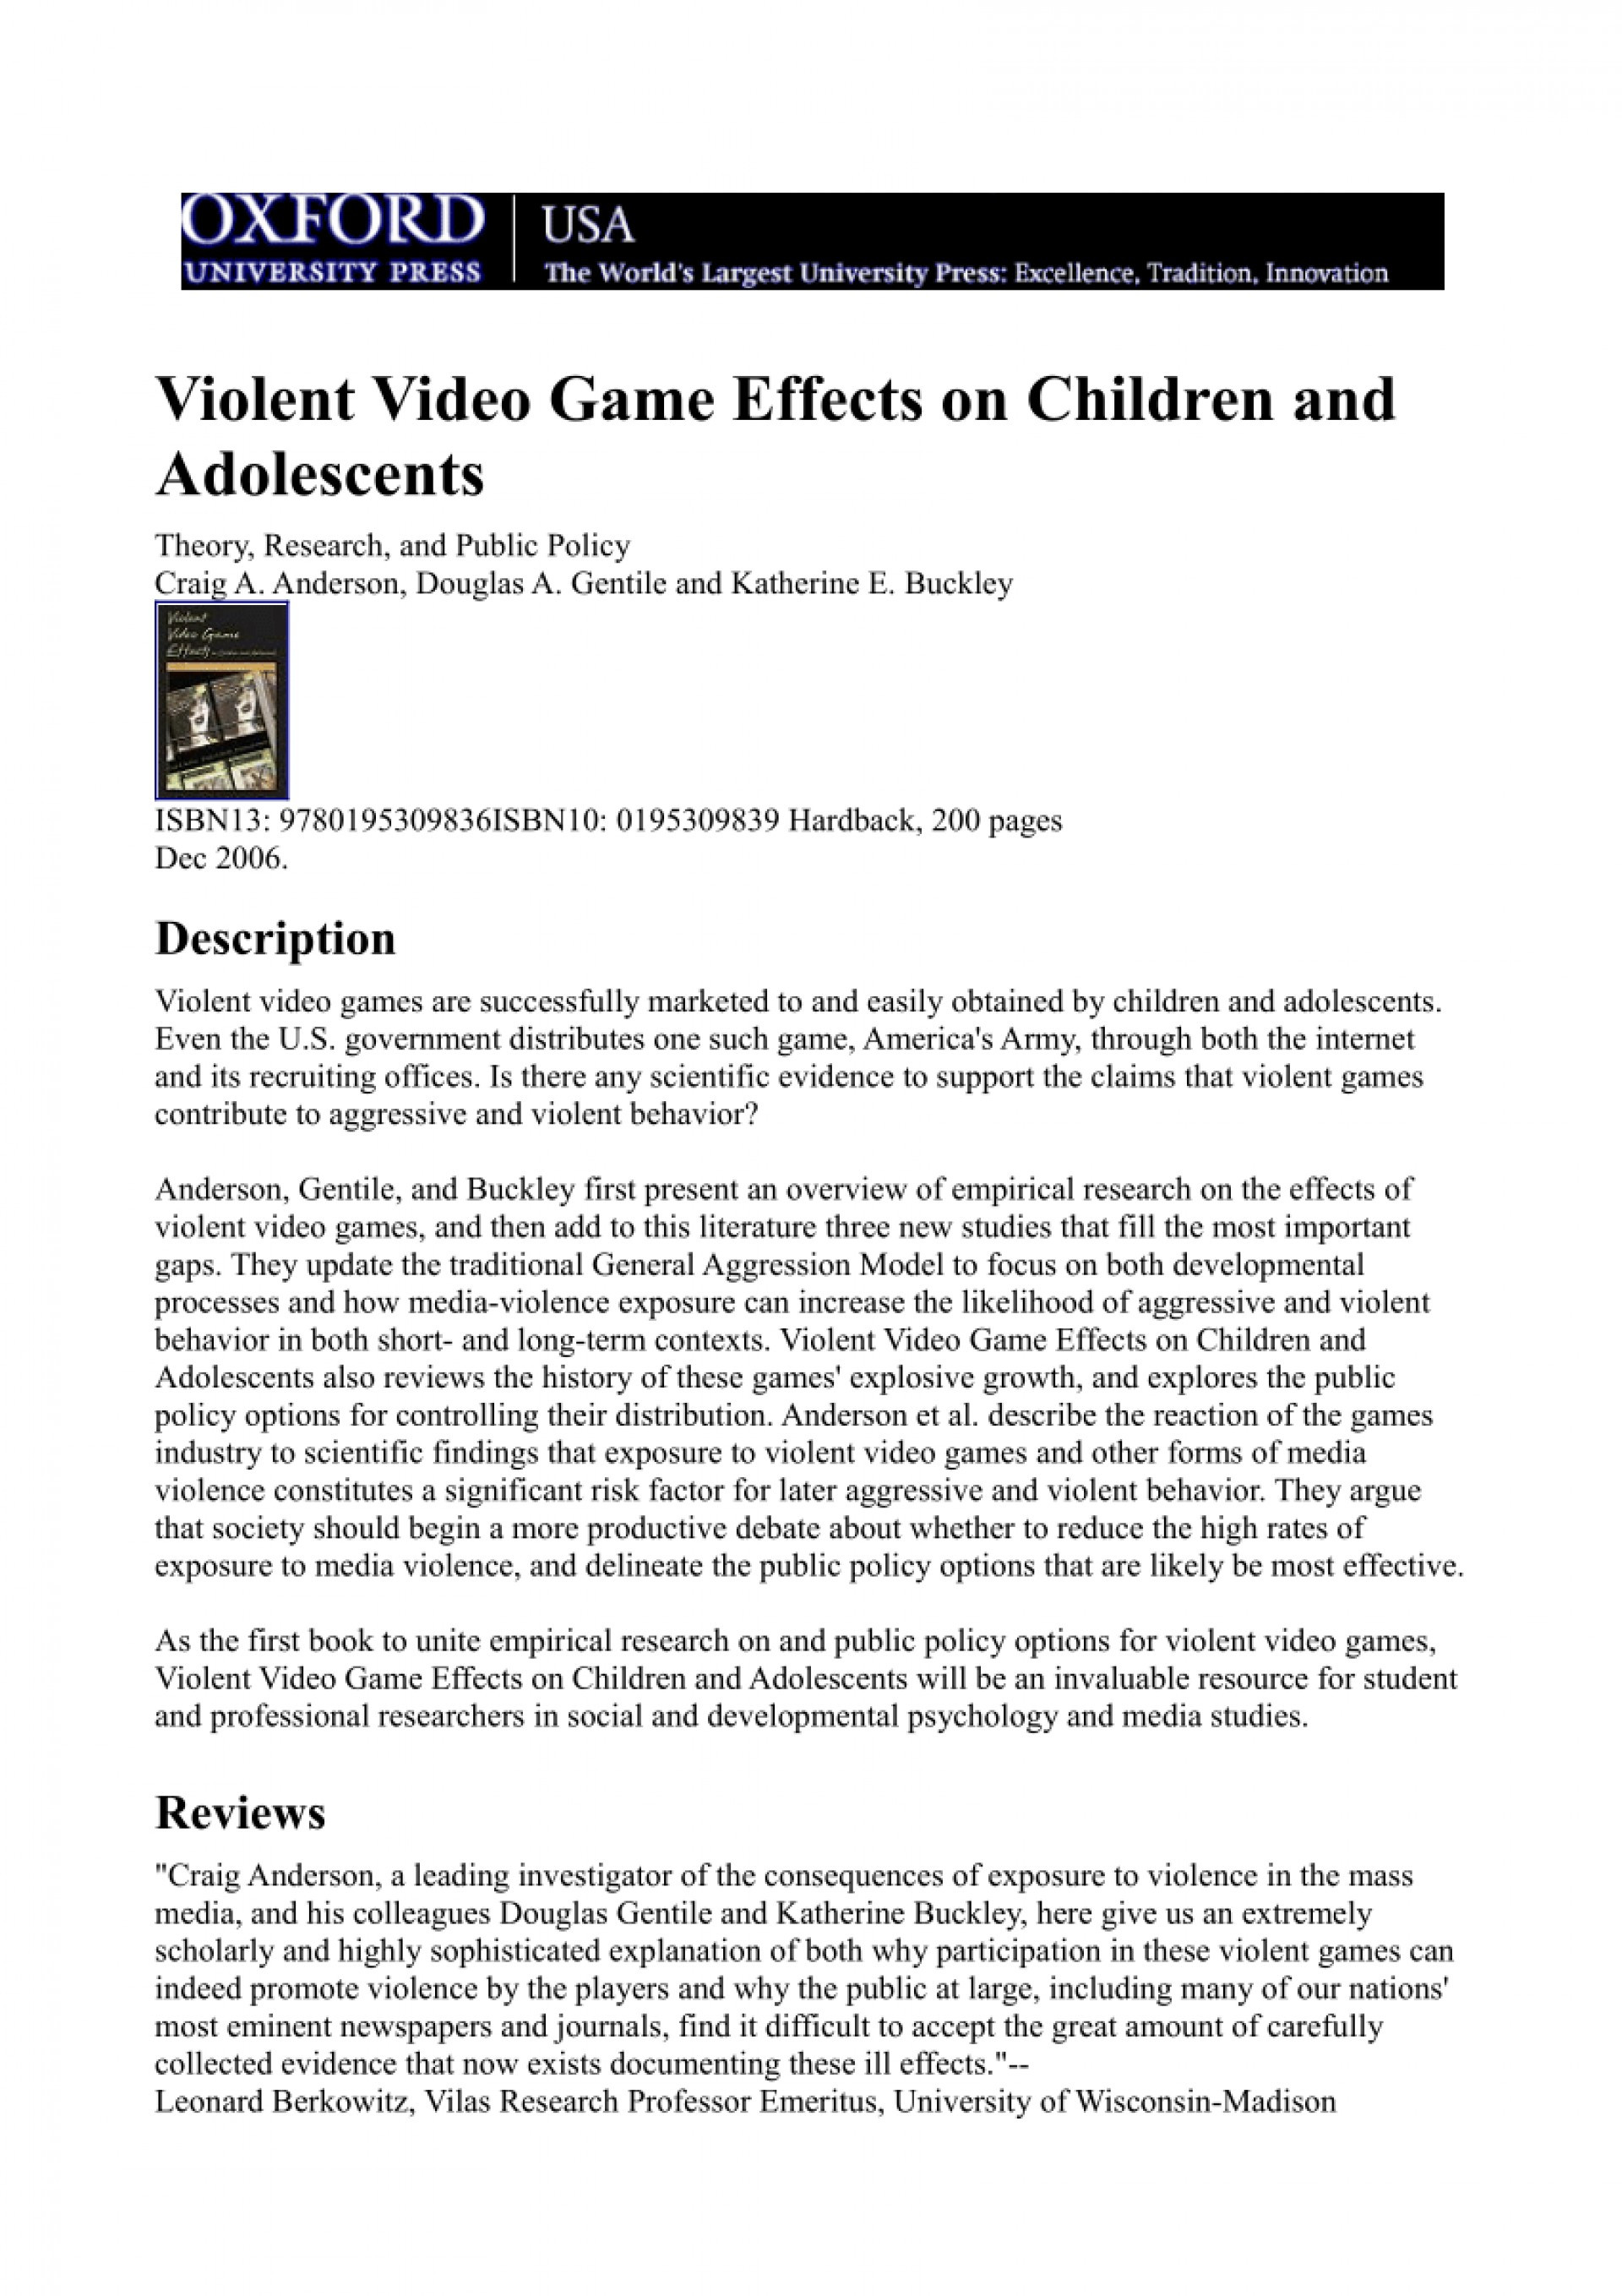 003 Negative Effects Of Video Games Essay Largepreview Top 10 The Good And Bad Positive Pdf 1920